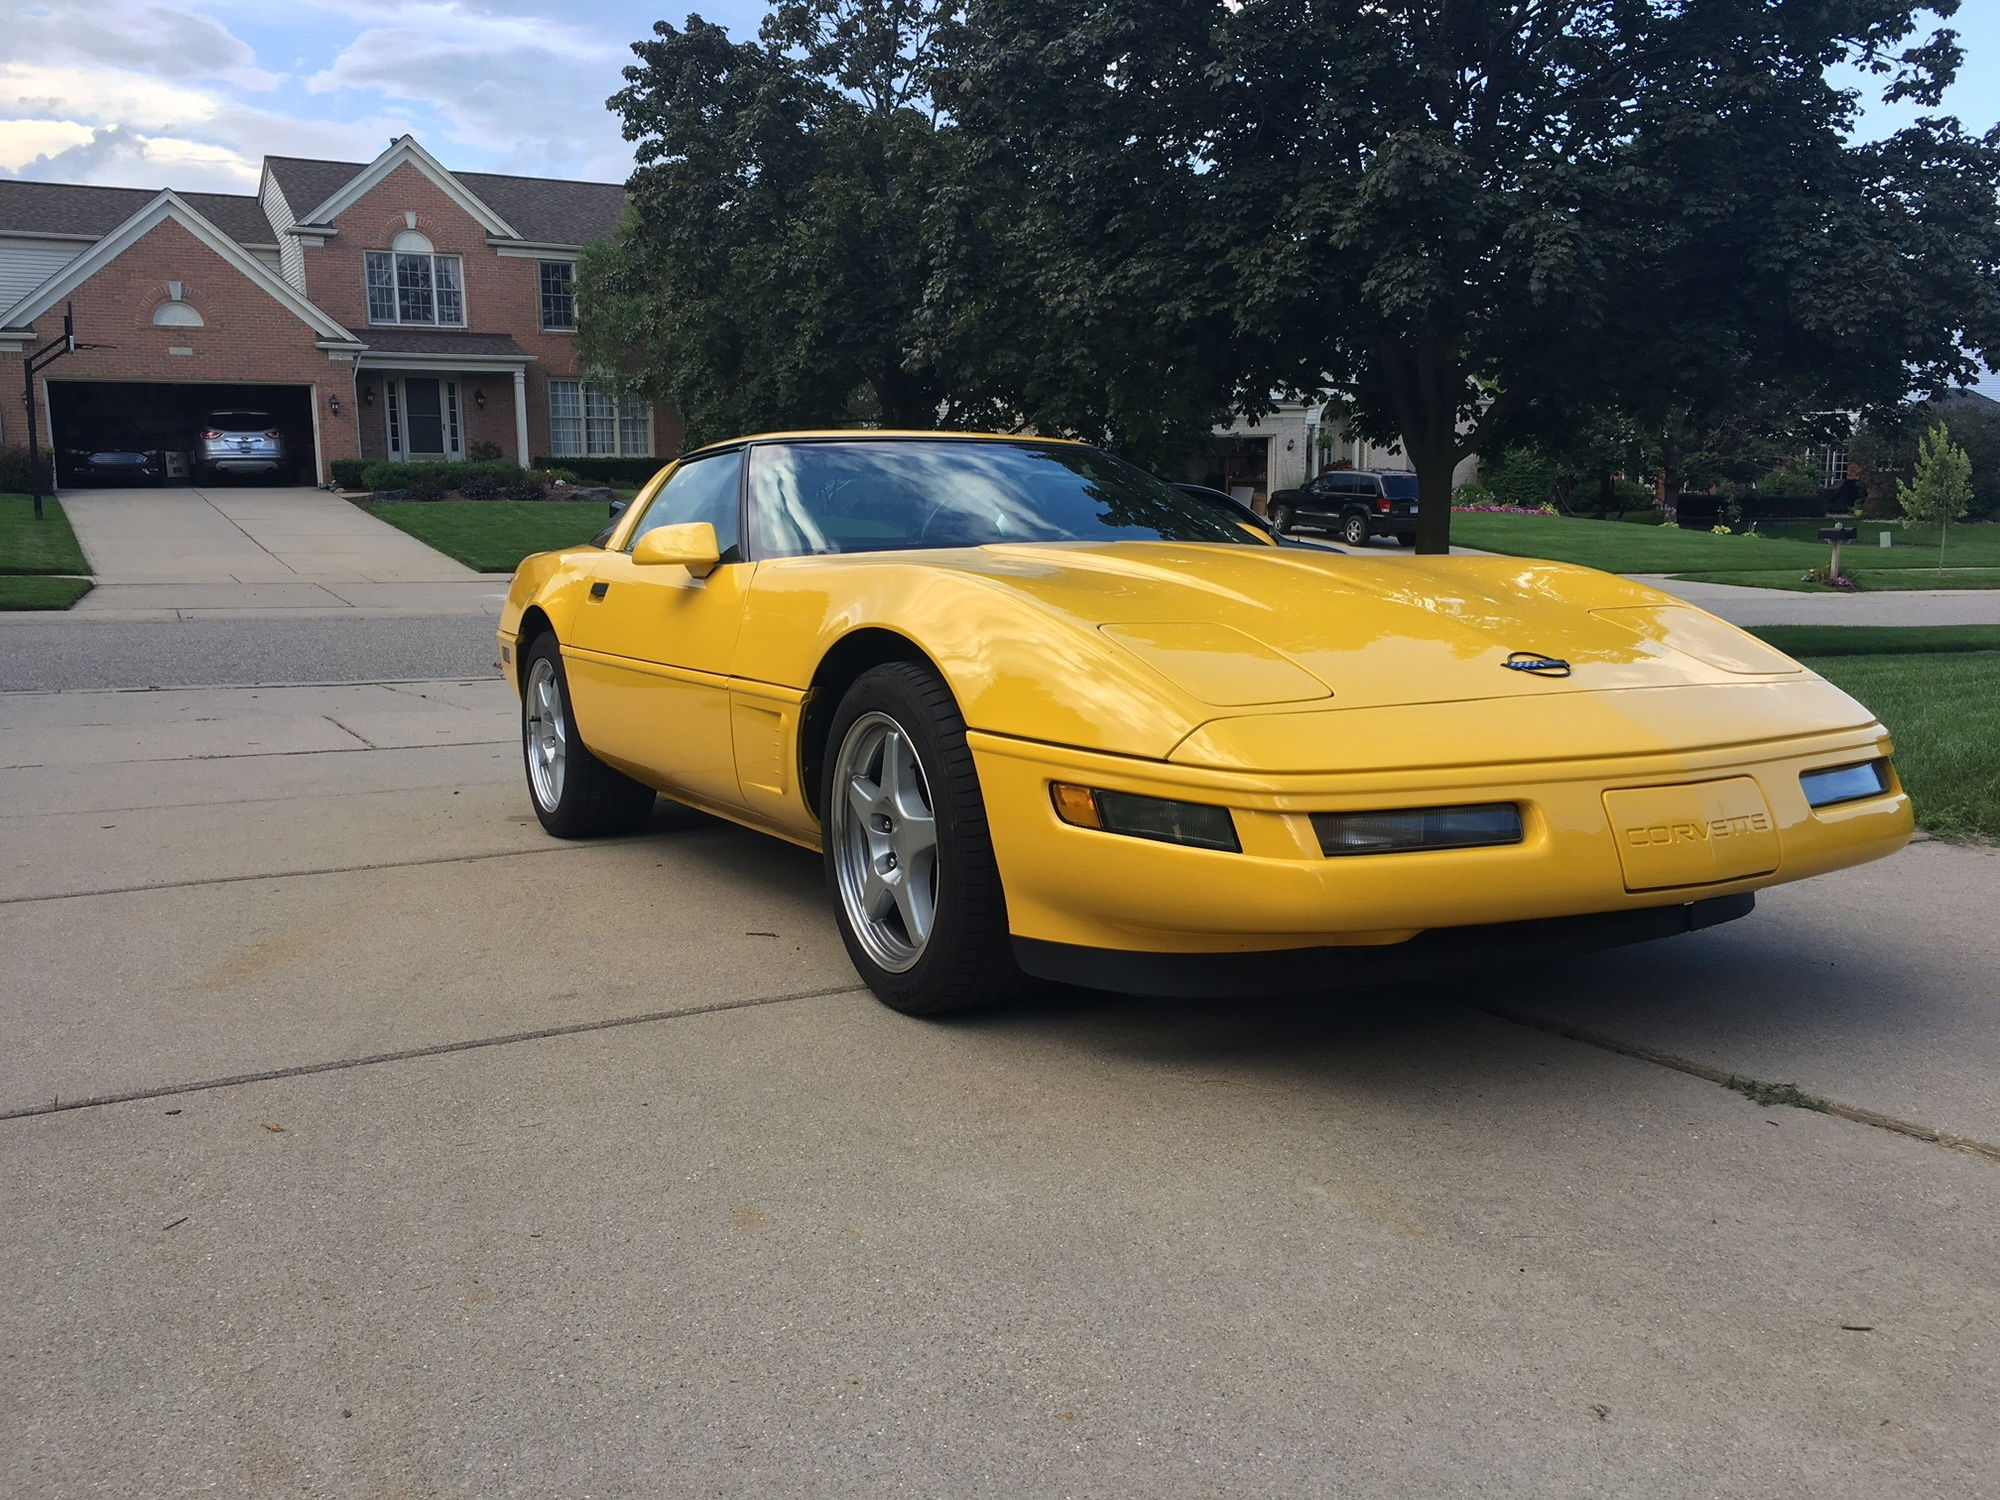 c4 fs for sale 1996 corvette lt4 competition yellow 36 600 miles detroit mi corvette. Black Bedroom Furniture Sets. Home Design Ideas